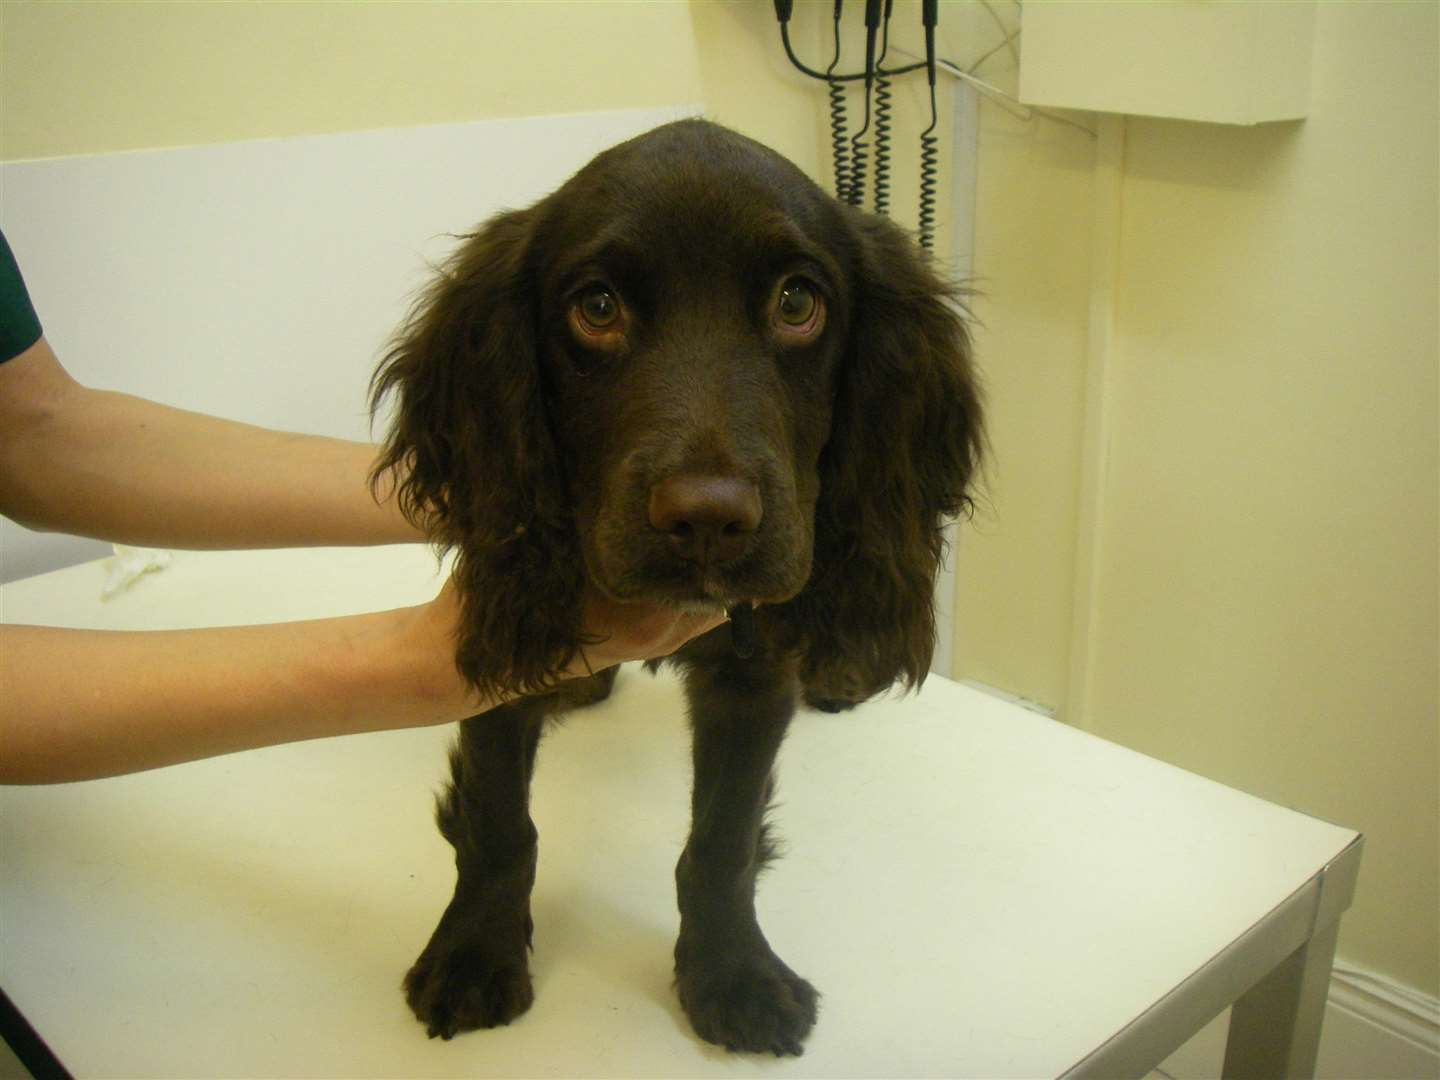 Cocker spaniel Max was rehomed after being rescued by the RSPCA